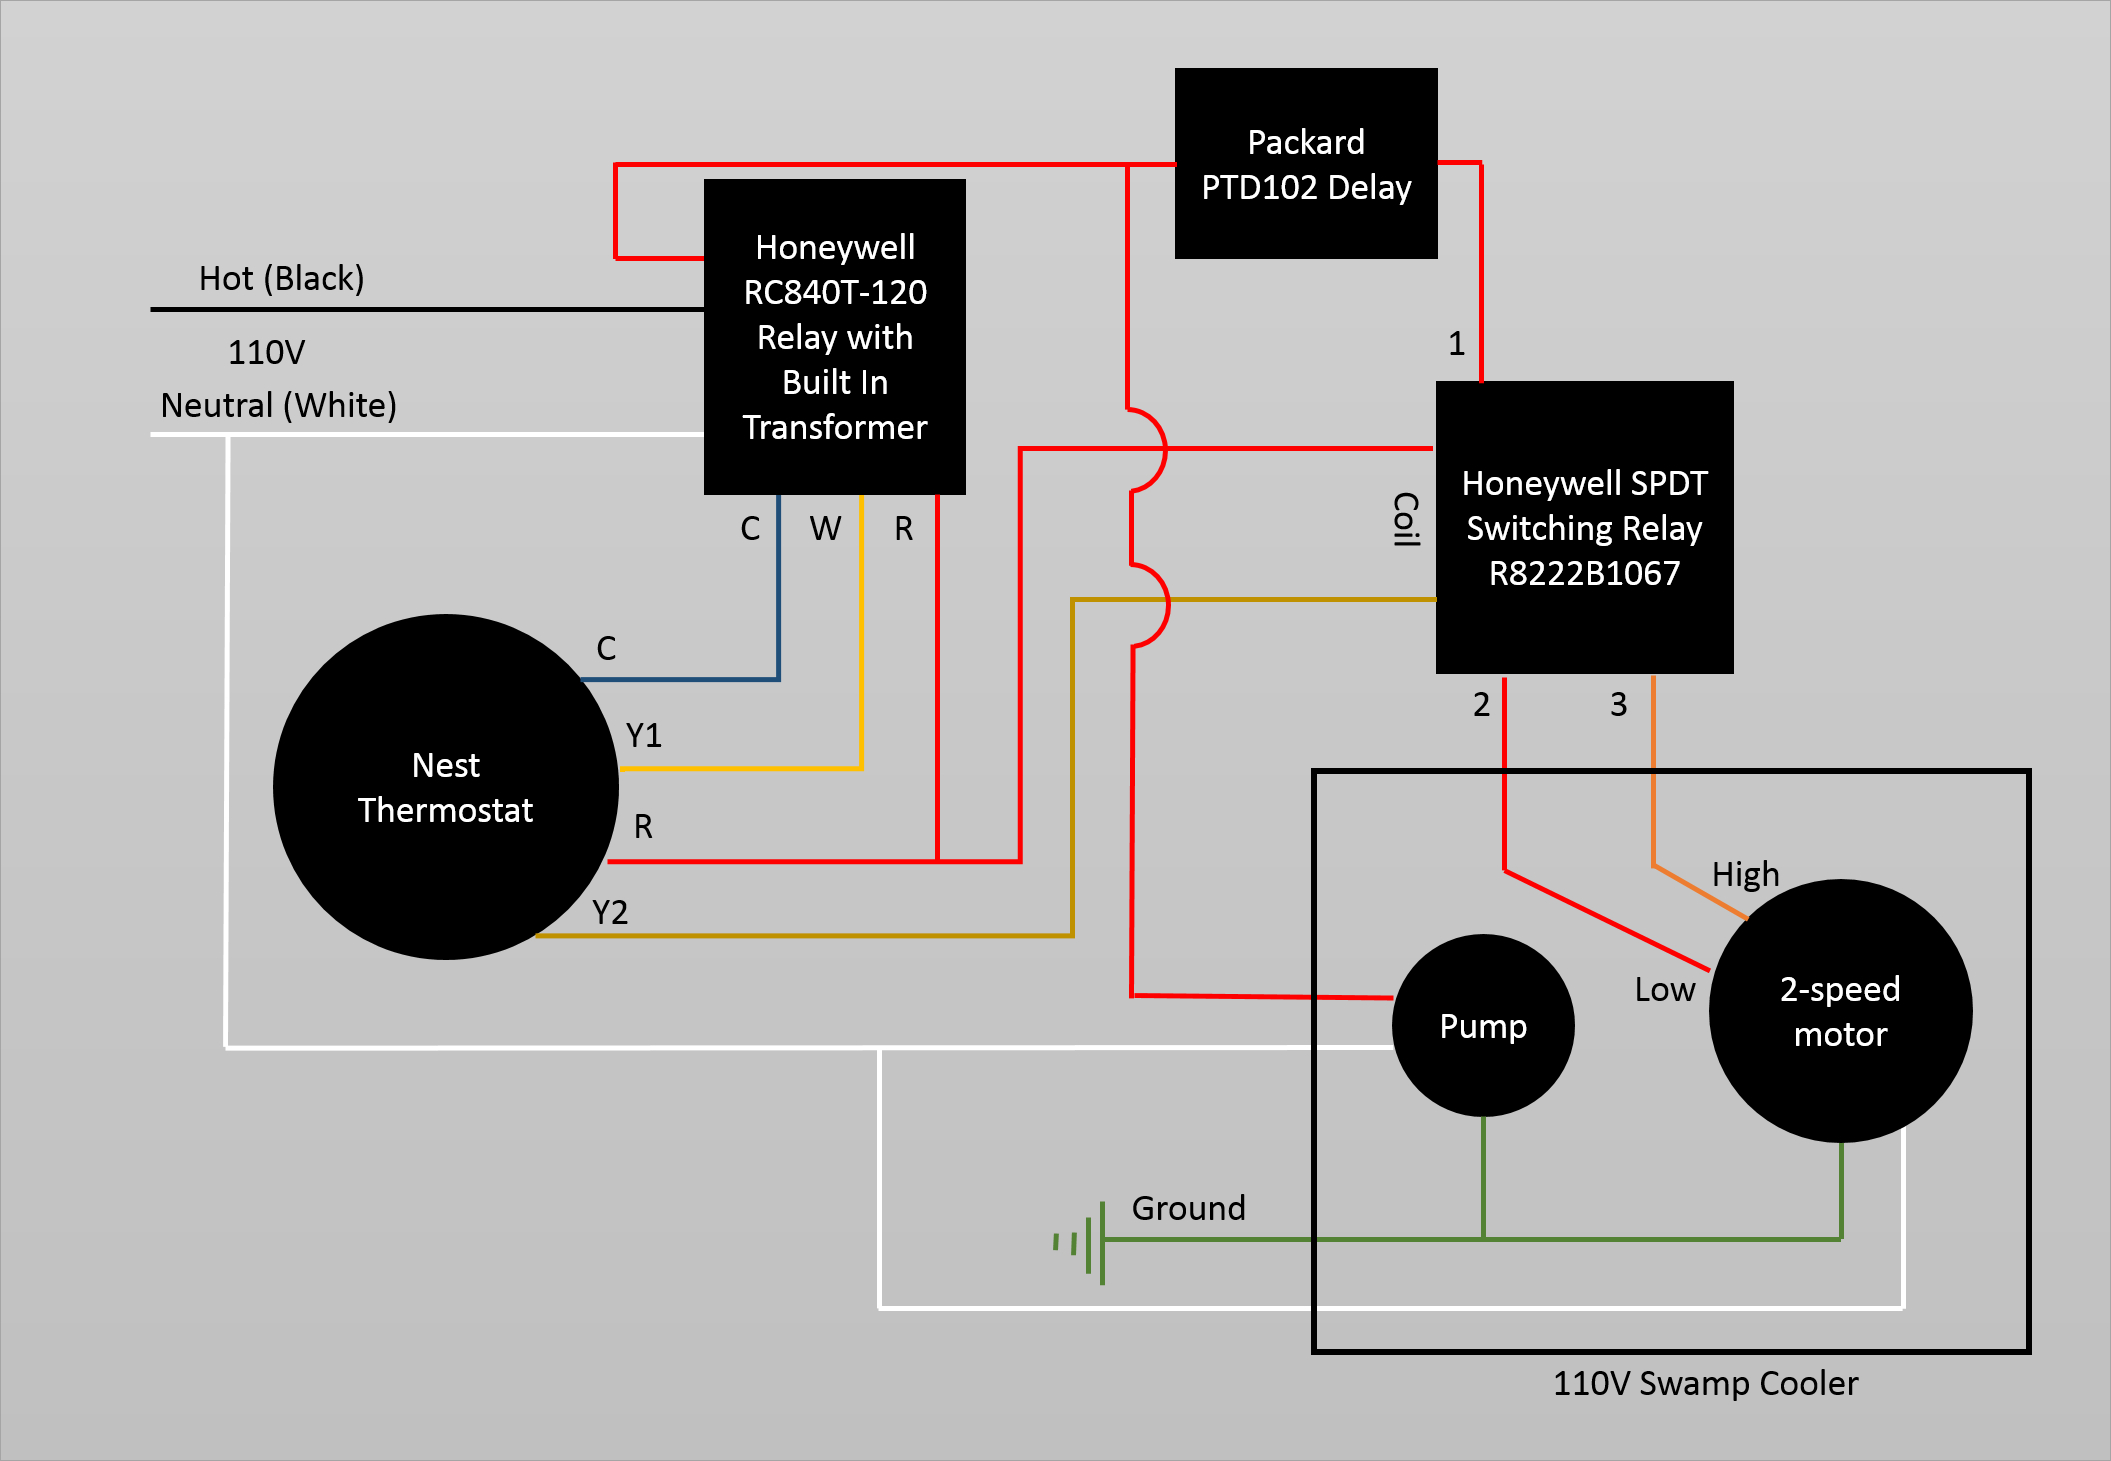 Wiring - Controlling 110V Swamp Cooler Using Nest Thermostat - Home - Check Your Nest Thermostat Wiring Diagram